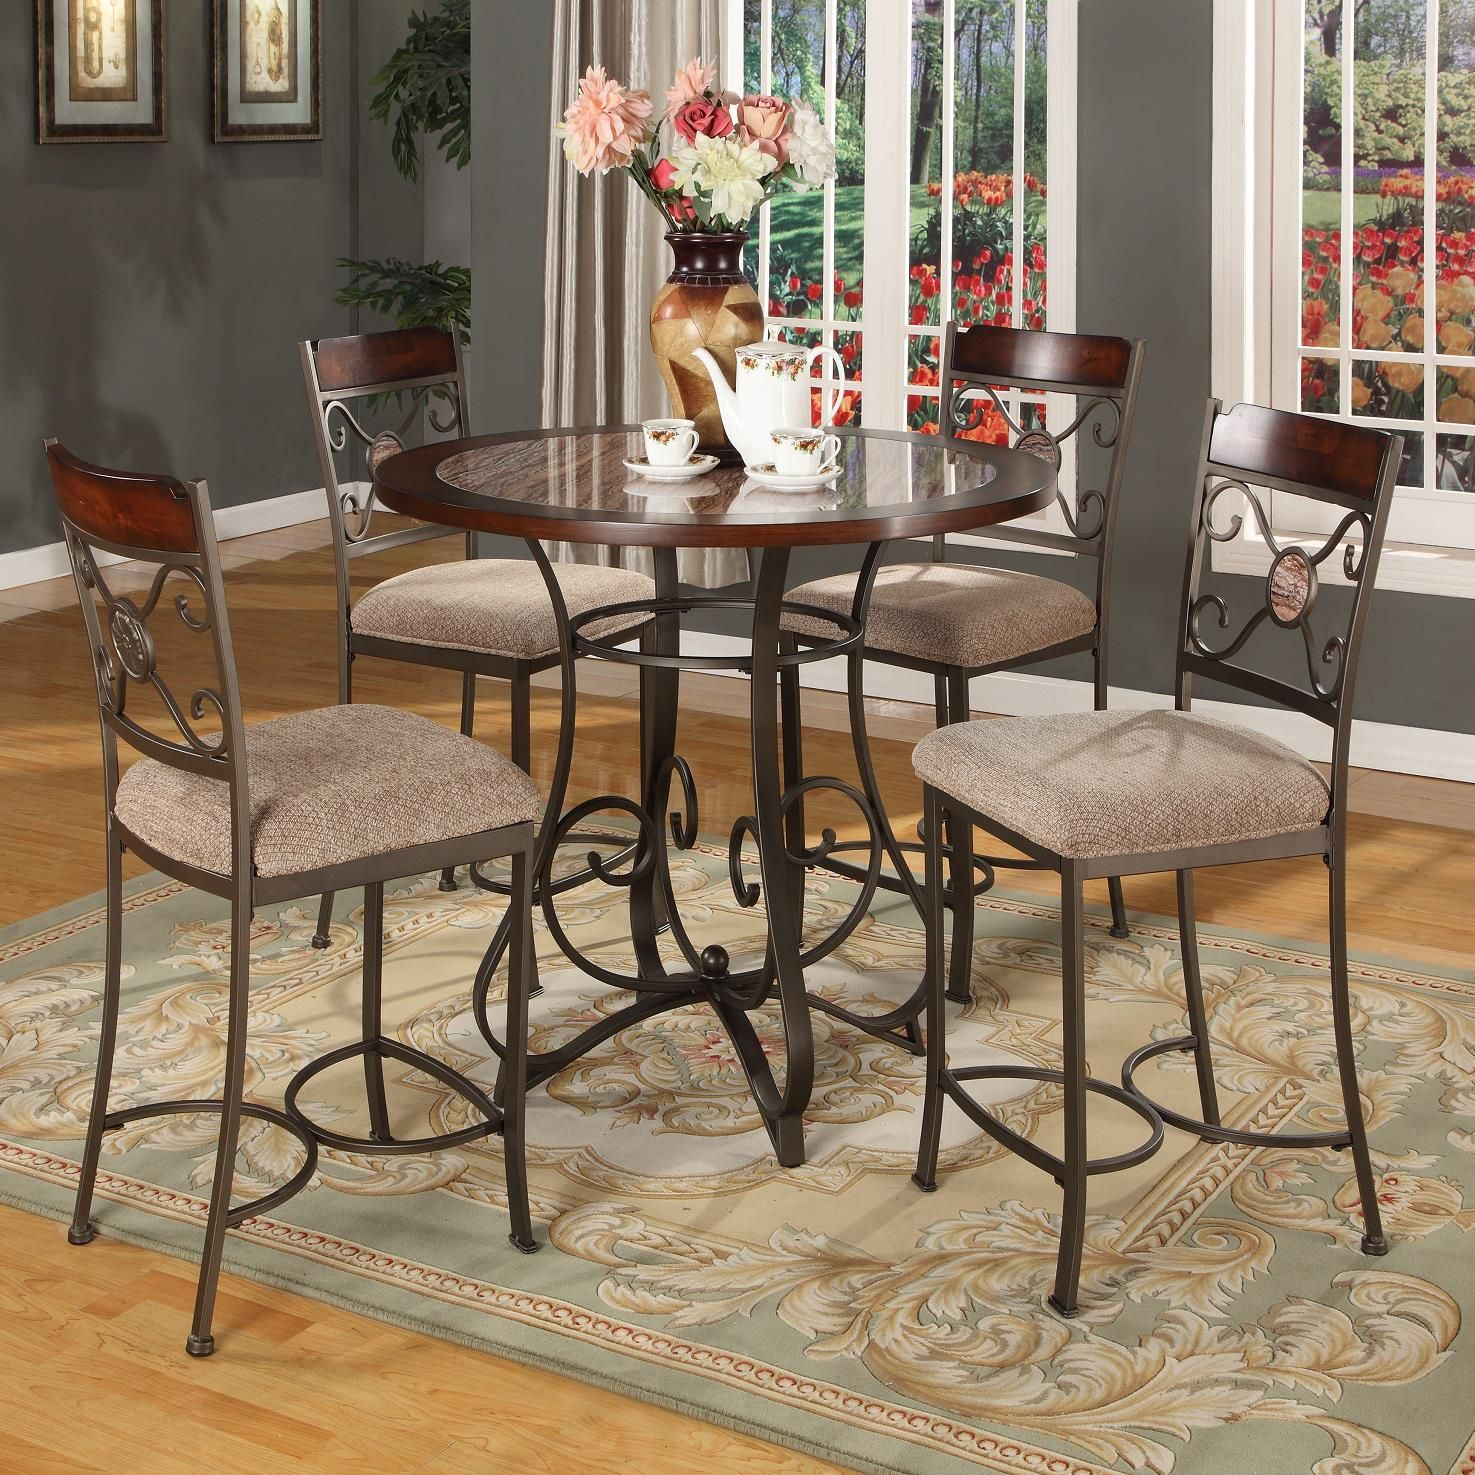 DC067 Metal Pub Table and Chair Set